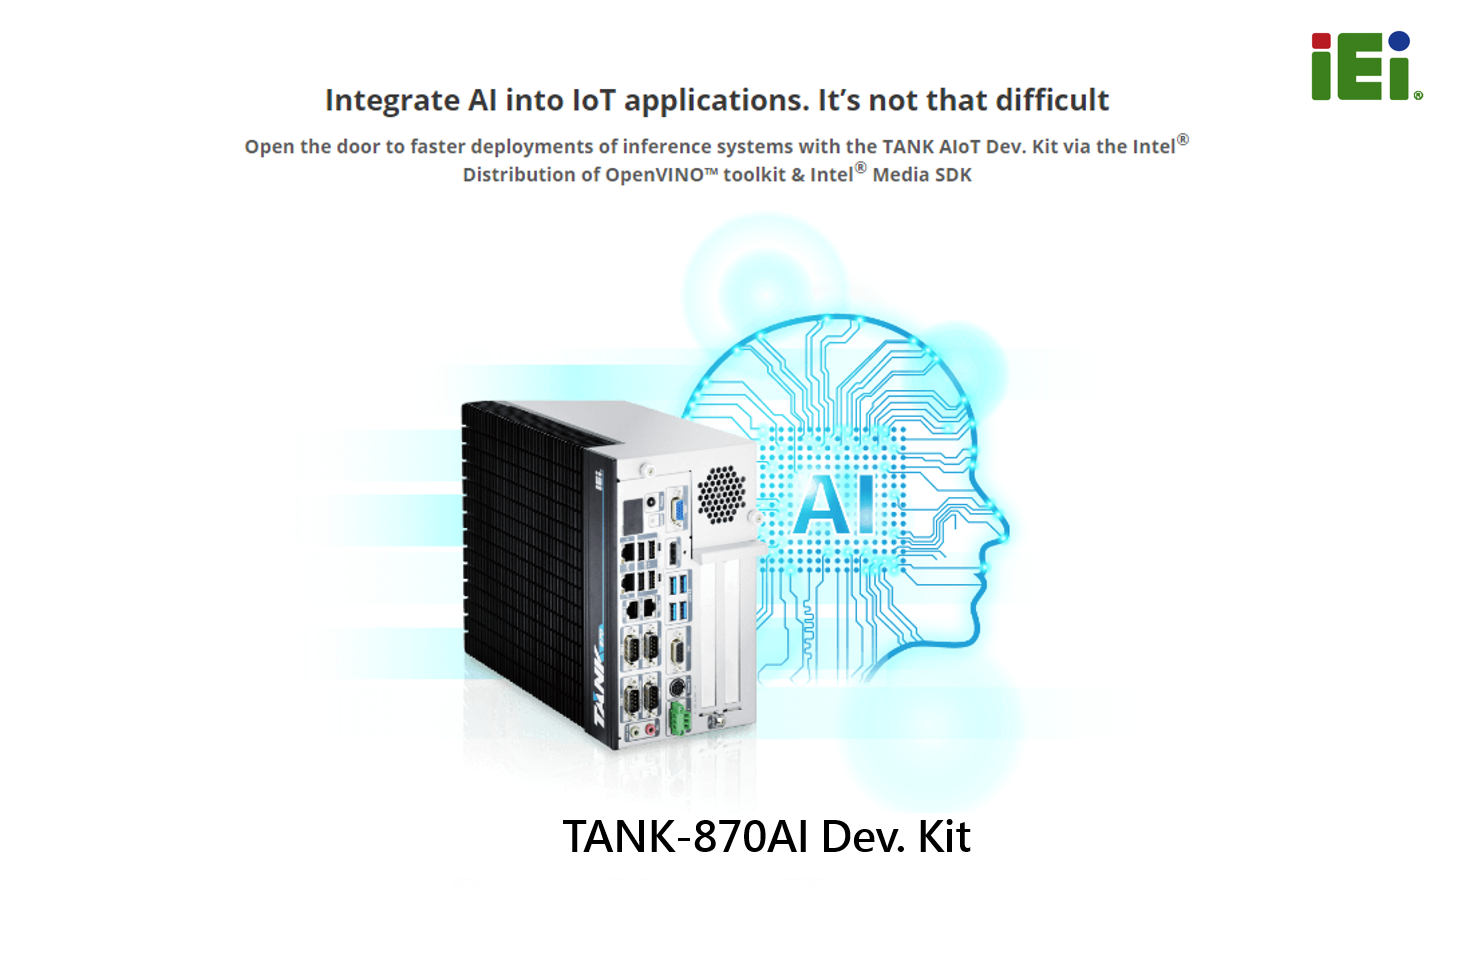 TANK-870AI Dev. Kit